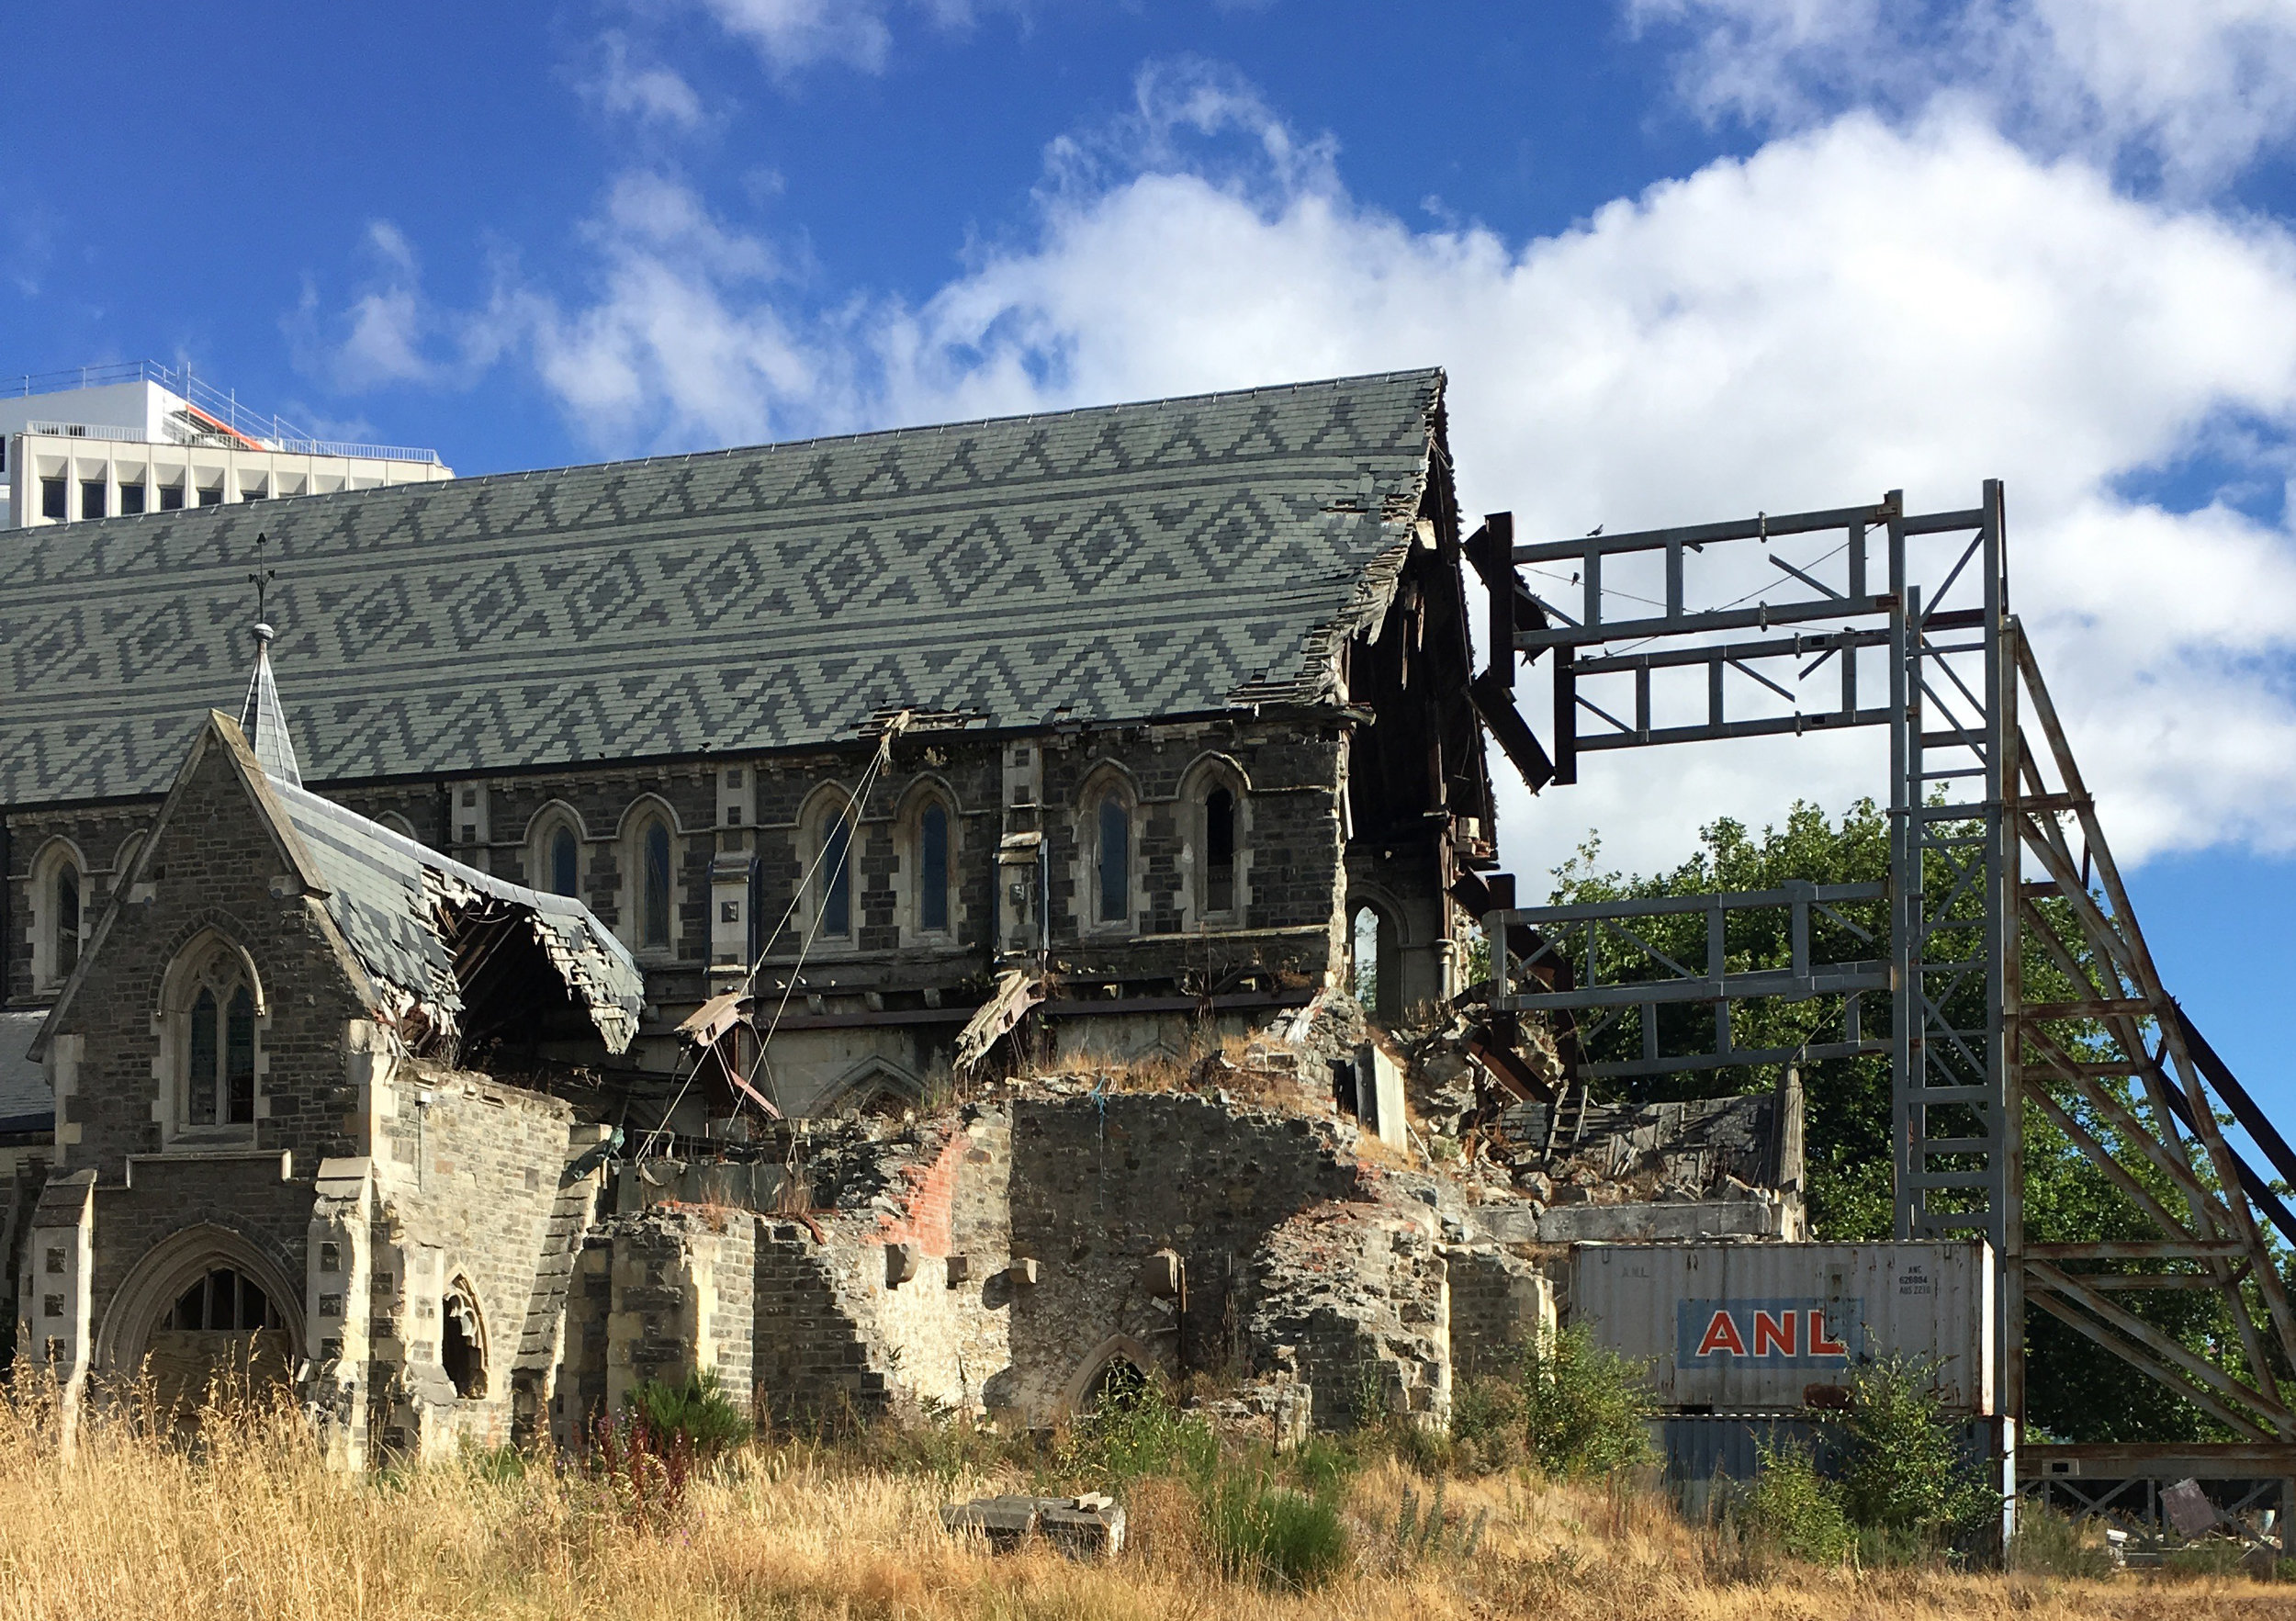 Rebuilding the ChristChurch Cathedral started this year and is expected to take 10 years.